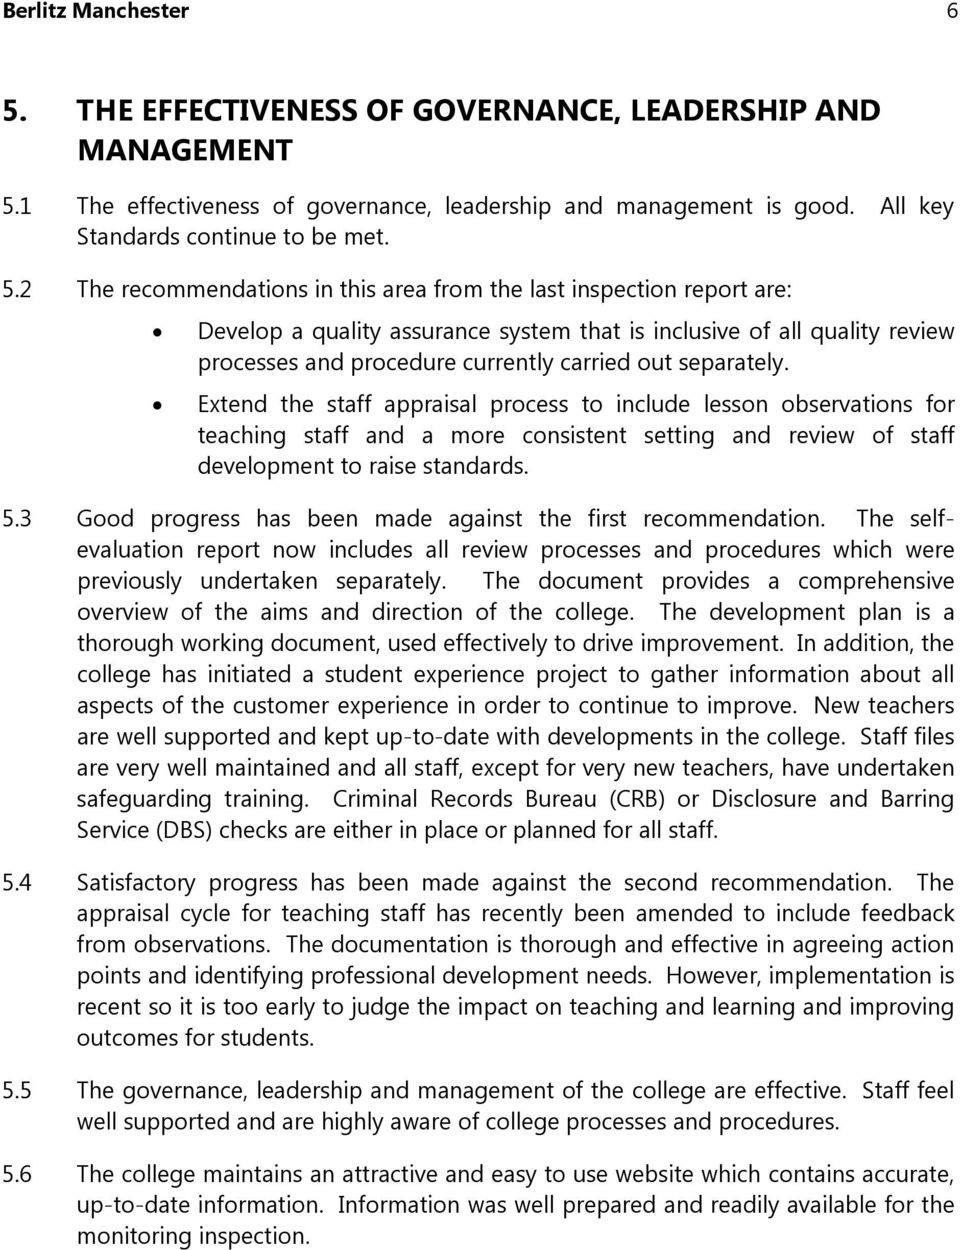 1 The effectiveness of governance, leadership and management is good. All key Standards continue to be met. 5.